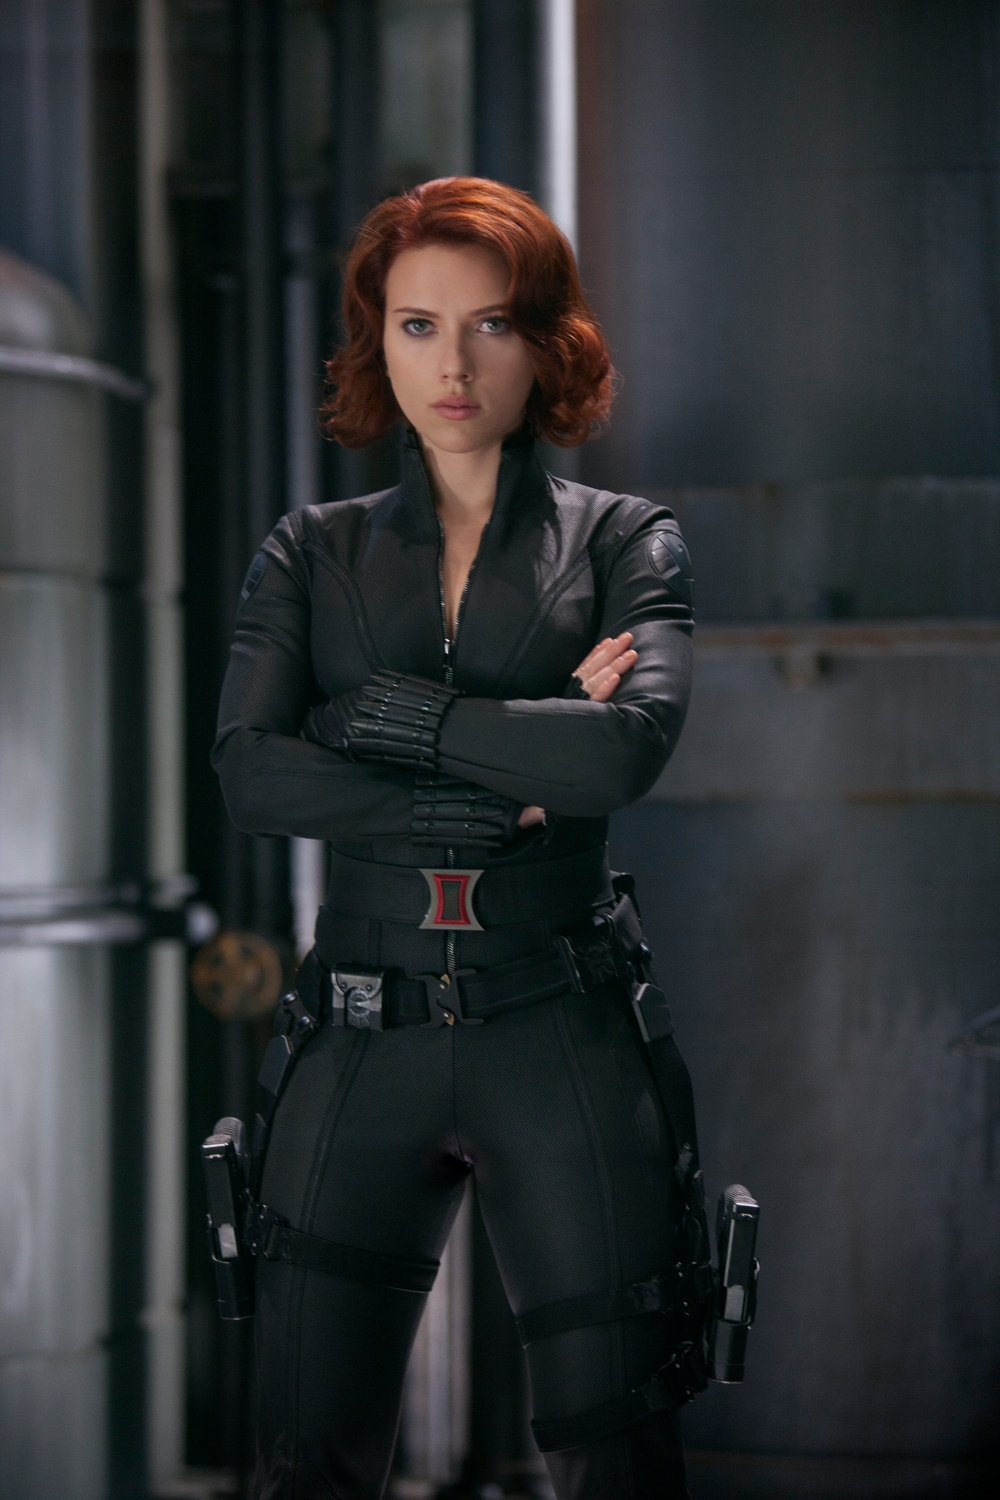 Inspiring Women in Pop Culture | Black Widow